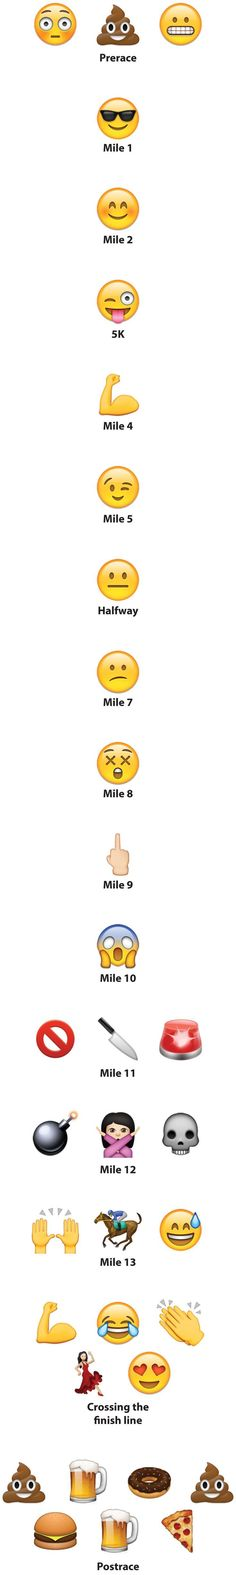 a Half Marathon as Told by Emojis Running a Half Marathon as Told by Emojis nnersworld.Running a Half Marathon as Told by Emojis nnersworld. Triathlon Humor, Triathlon Training Program, Triathlon Tattoo, Triathlon Women, Triathlon Wetsuit, Triathlon Motivation, Fitness Motivation, Race Training, Half Marathon Training